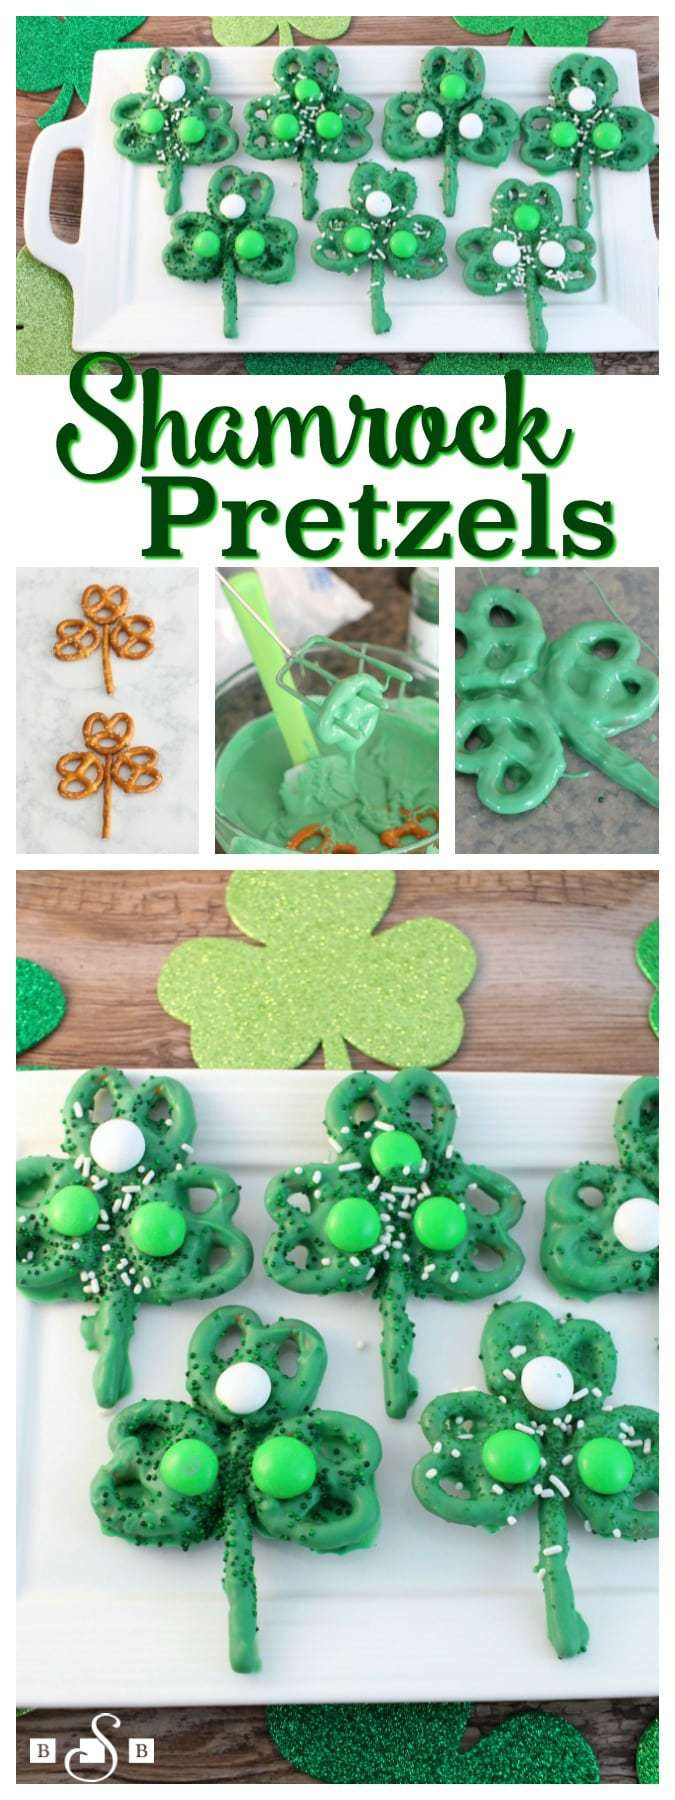 """I saw this fun idea for Pretzel Shamrocks on Pinterest - shout out to Mommy's Bundle for her fabulous idea. I'm not a fan of making """"pops"""" though because they cost more and it seems like I never have the pop sticks on hand when I want them. So I adapted her idea and the results came out darling! They were easy to make and I love how festive (and tasty!) they are. Enjoy!"""